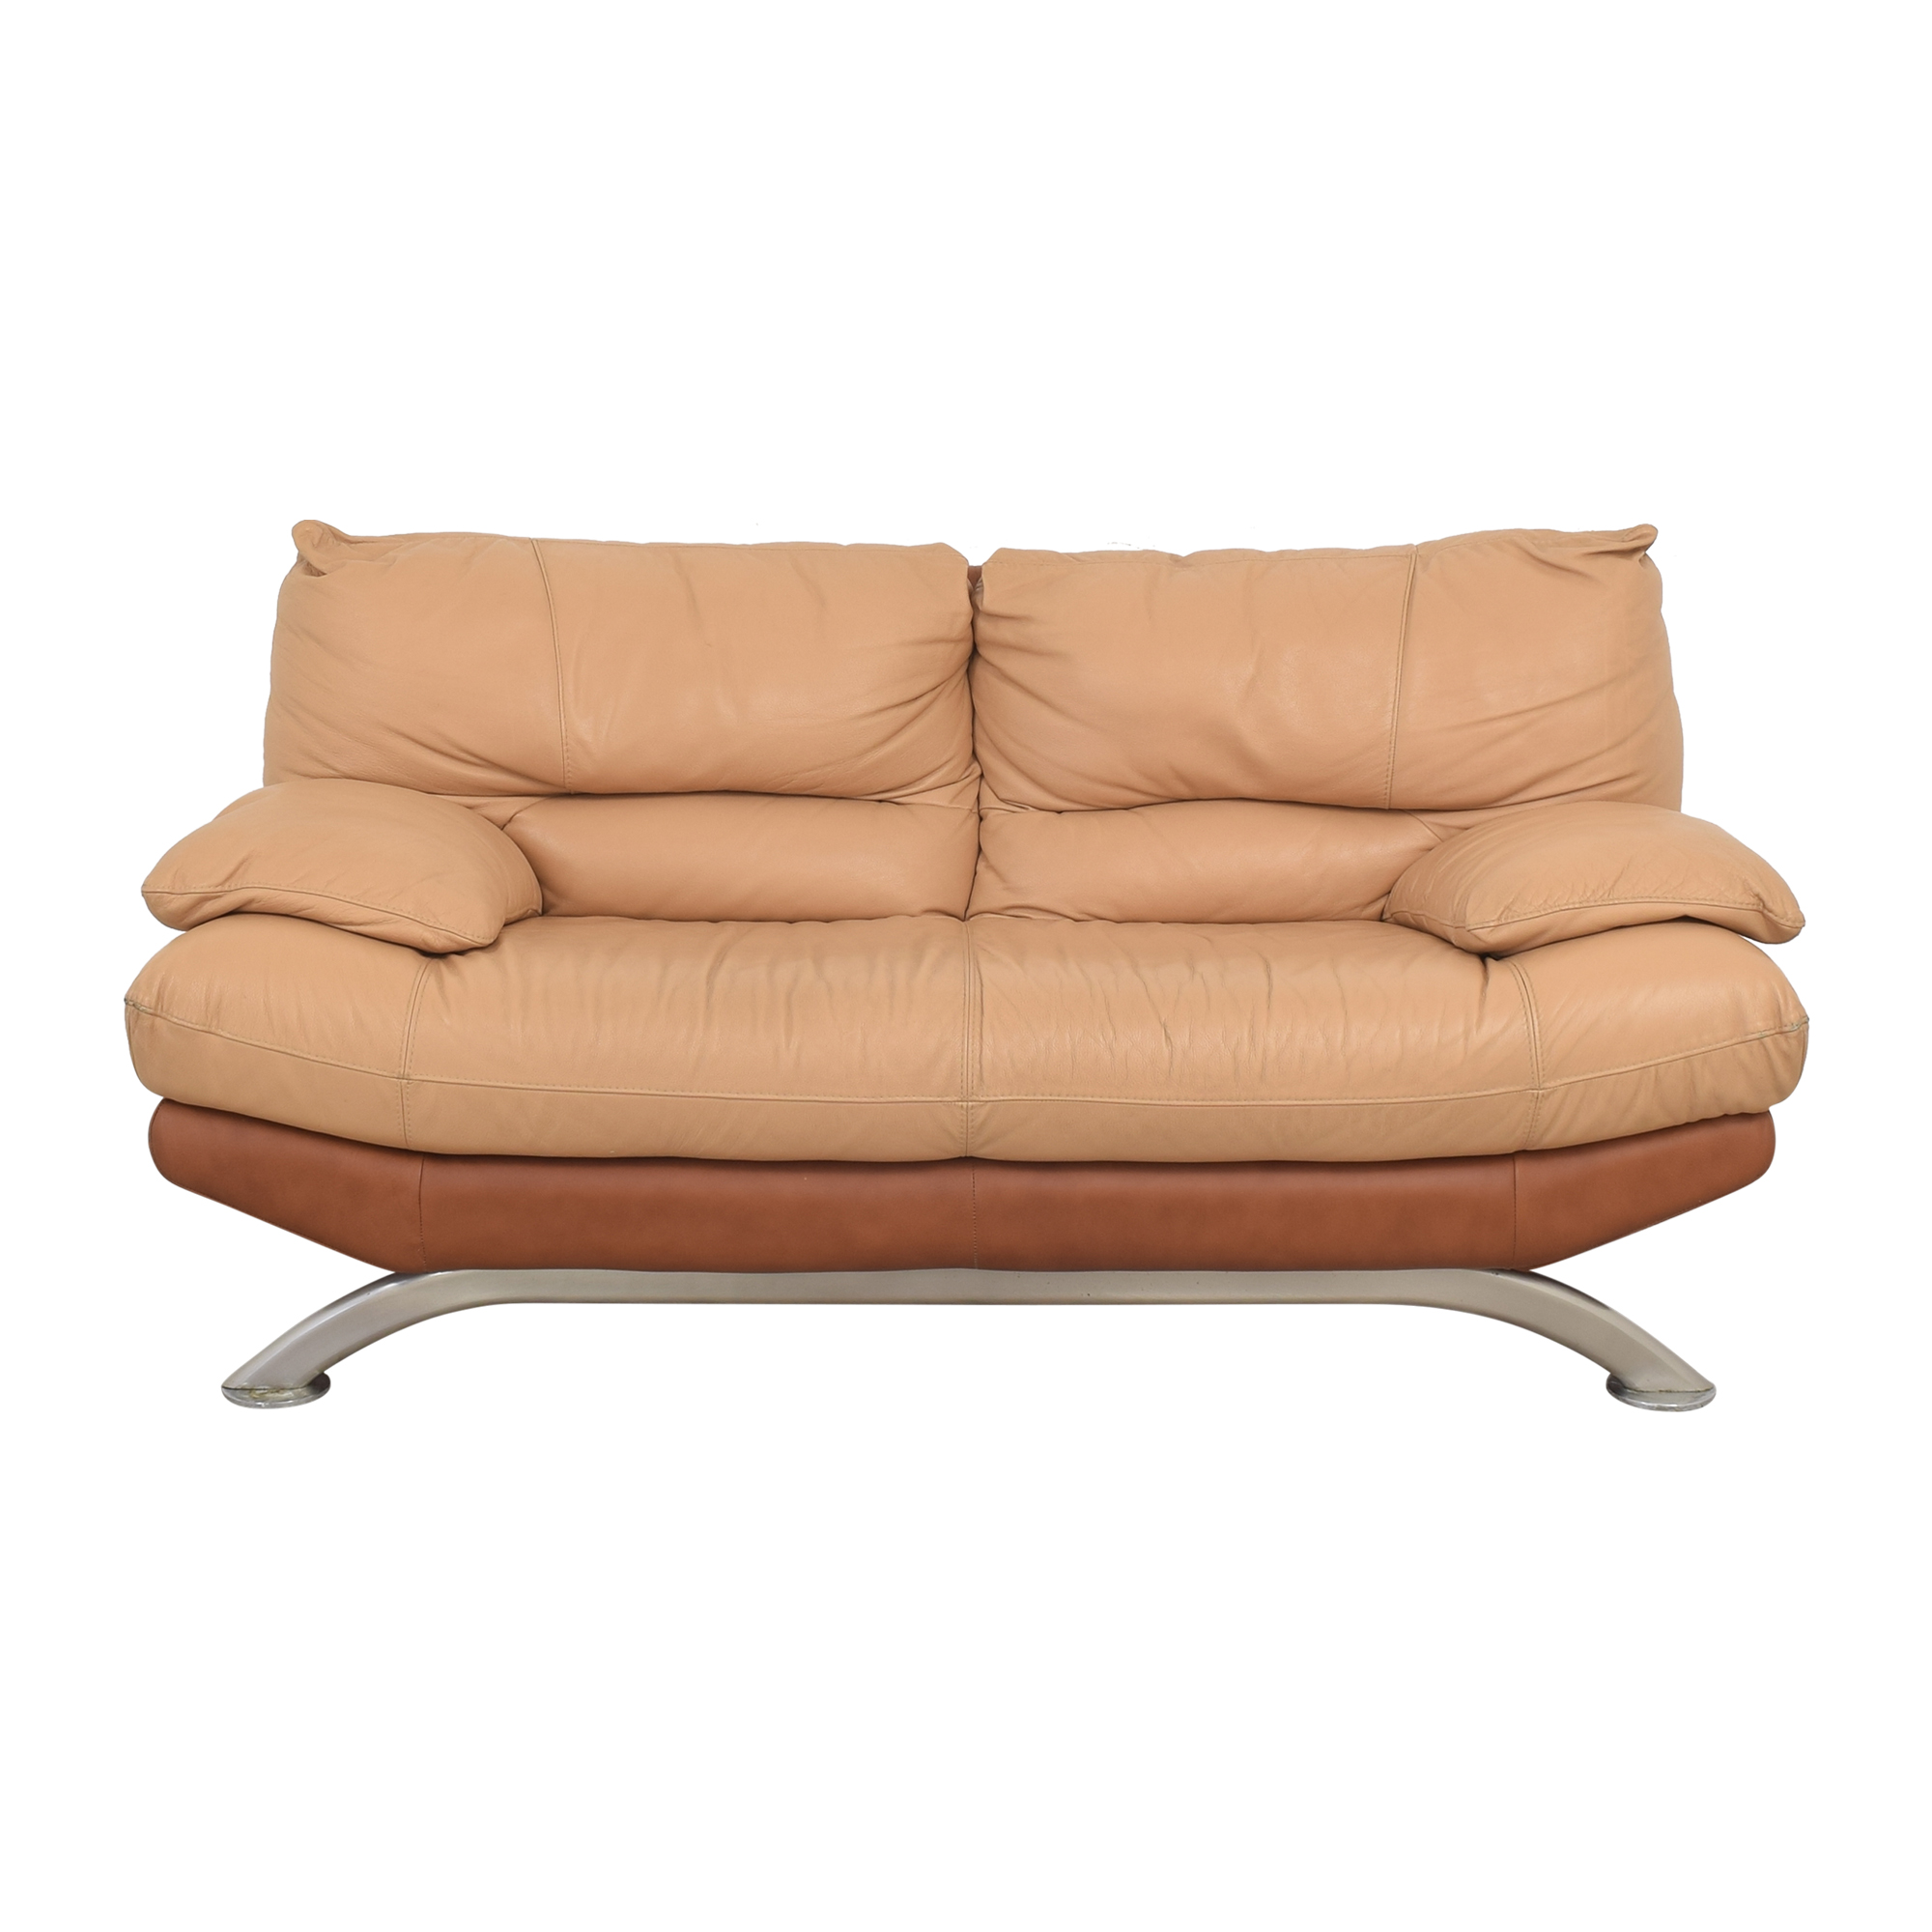 Nicoletti Home Nicoletti Two Seat Sofa dimensions